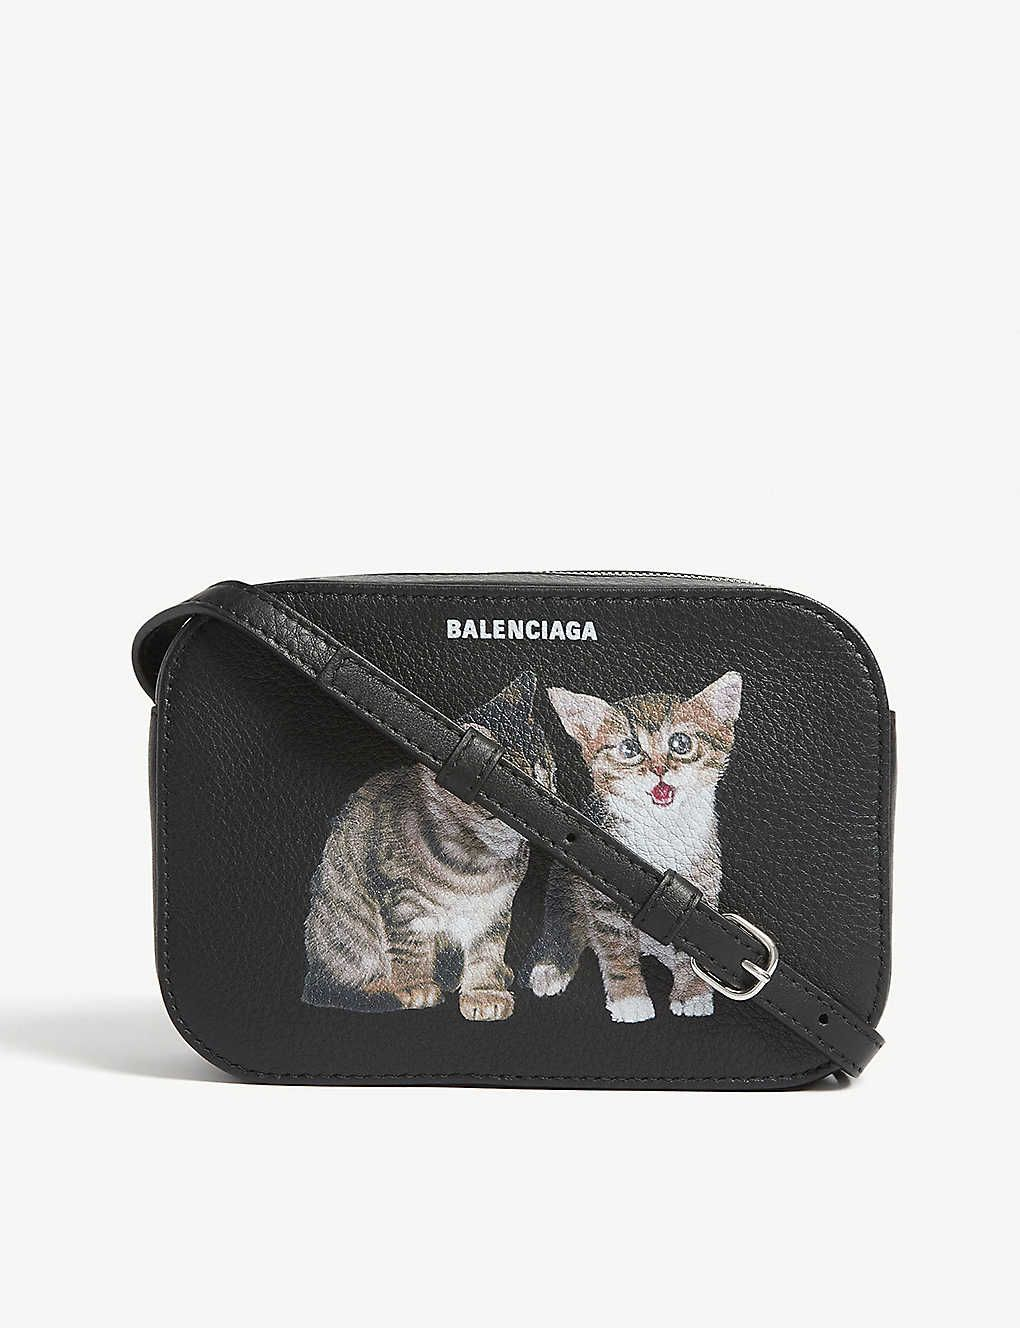 Kittens Everyday Leather Camera Bag Leather Camera Bag Bags Camera Bag